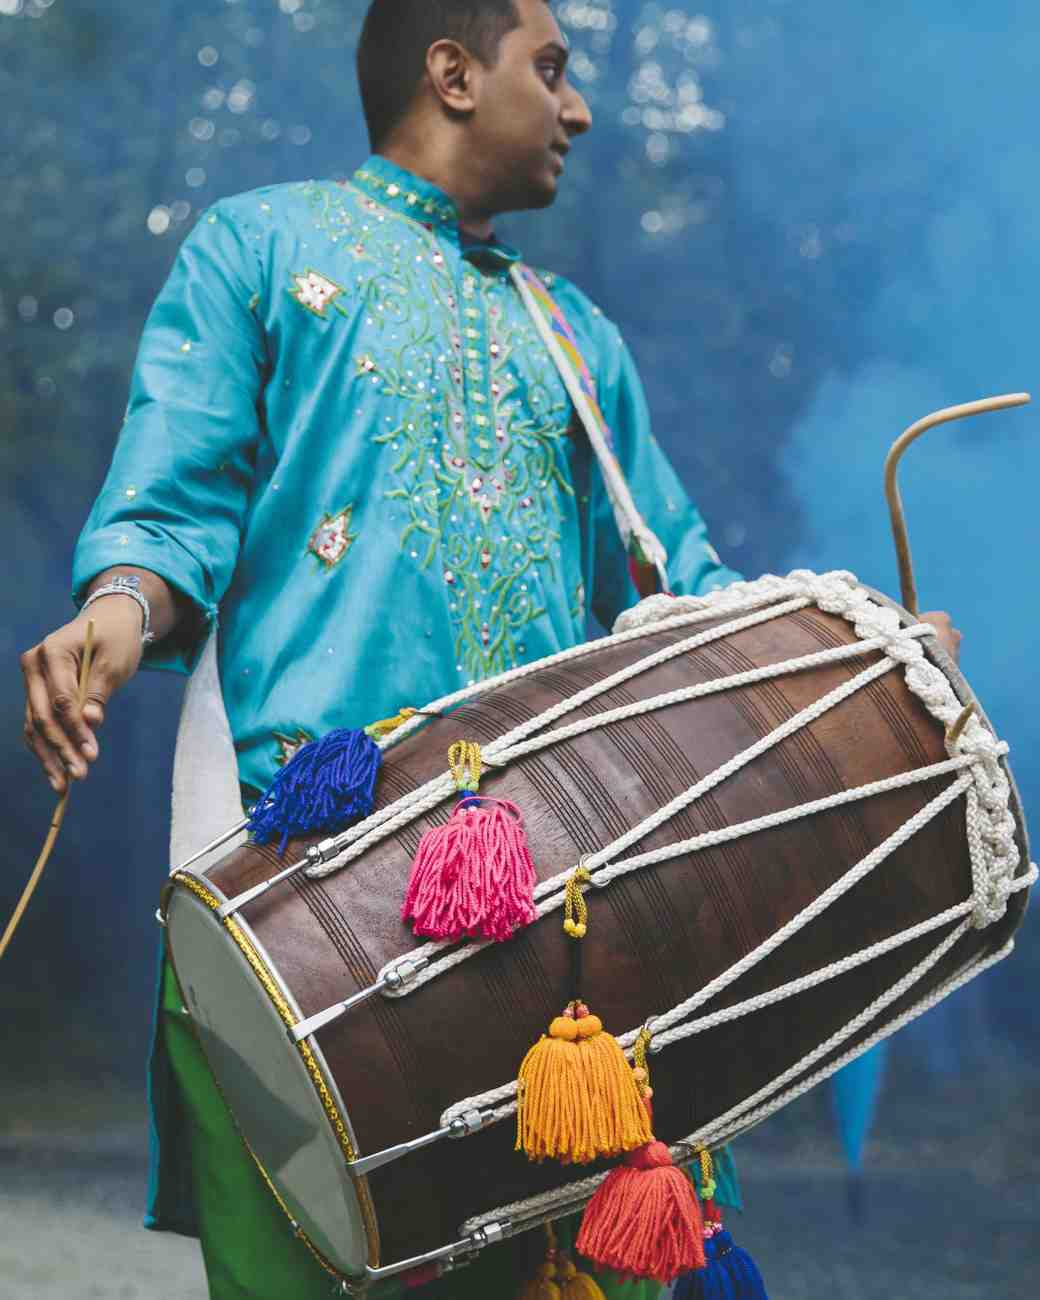 sanjay steven wedding baraat drum